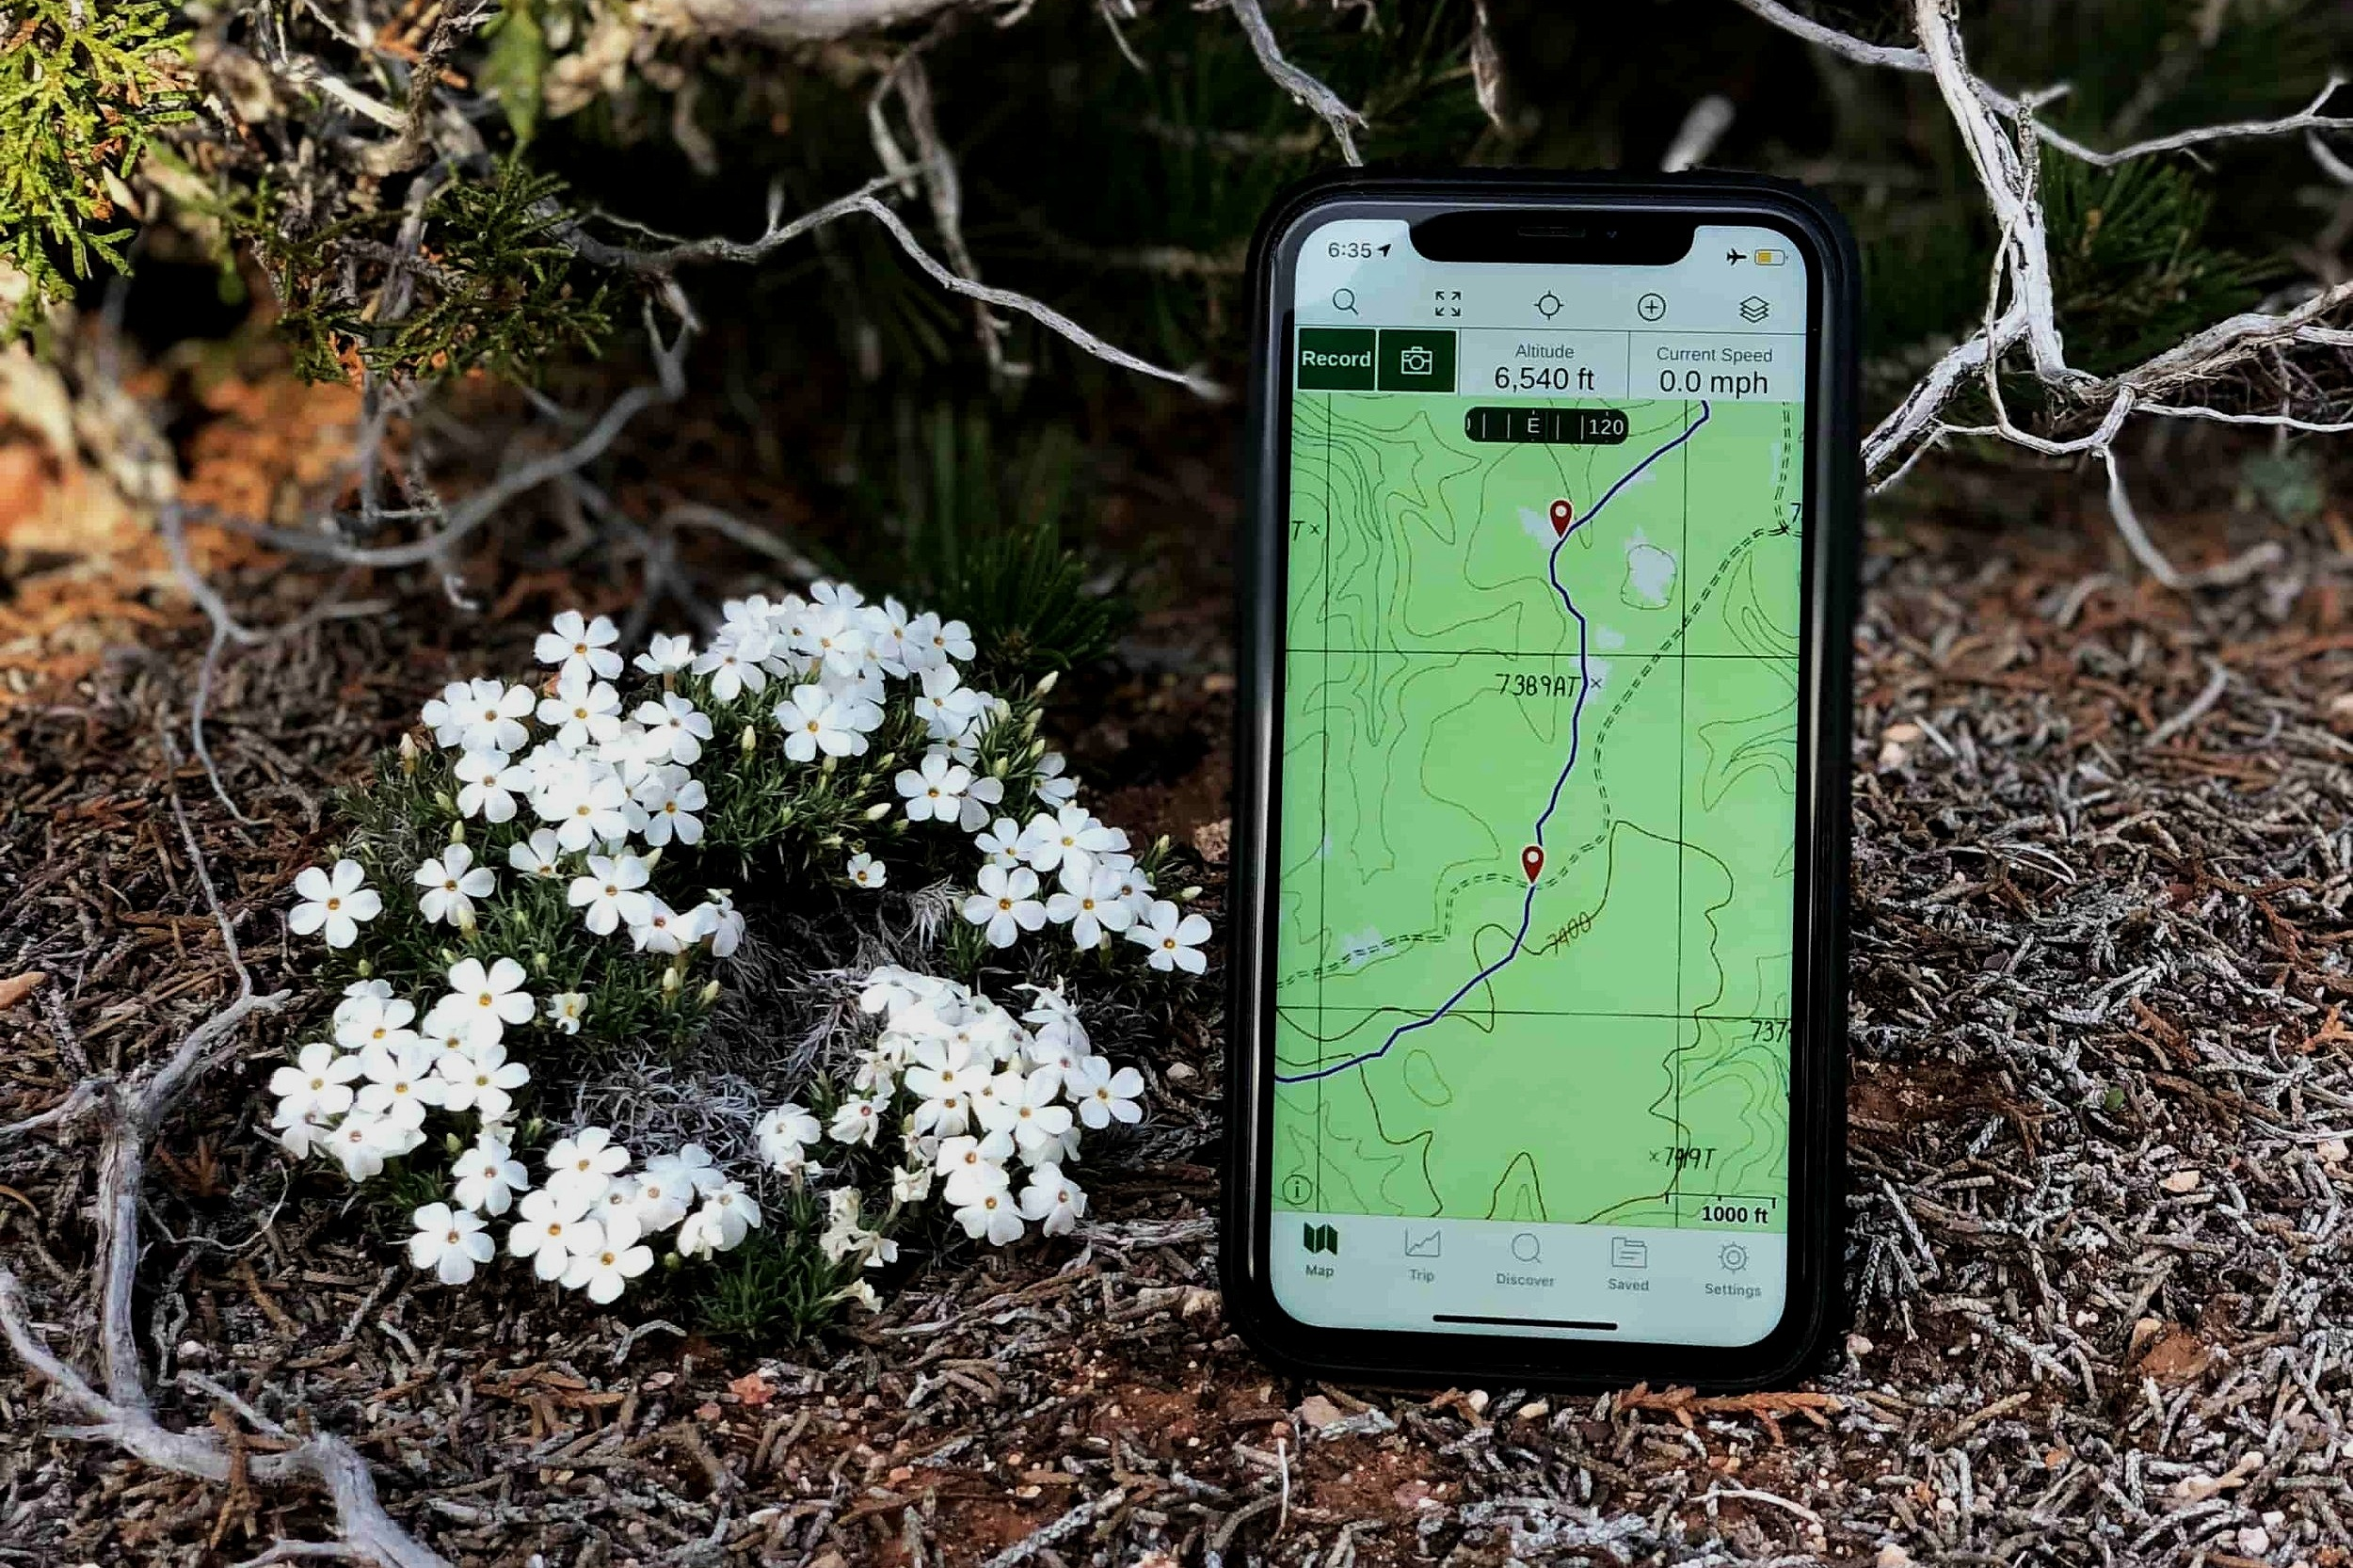 Iphone for Hiking - iPhone XR SmartphoneRead why→